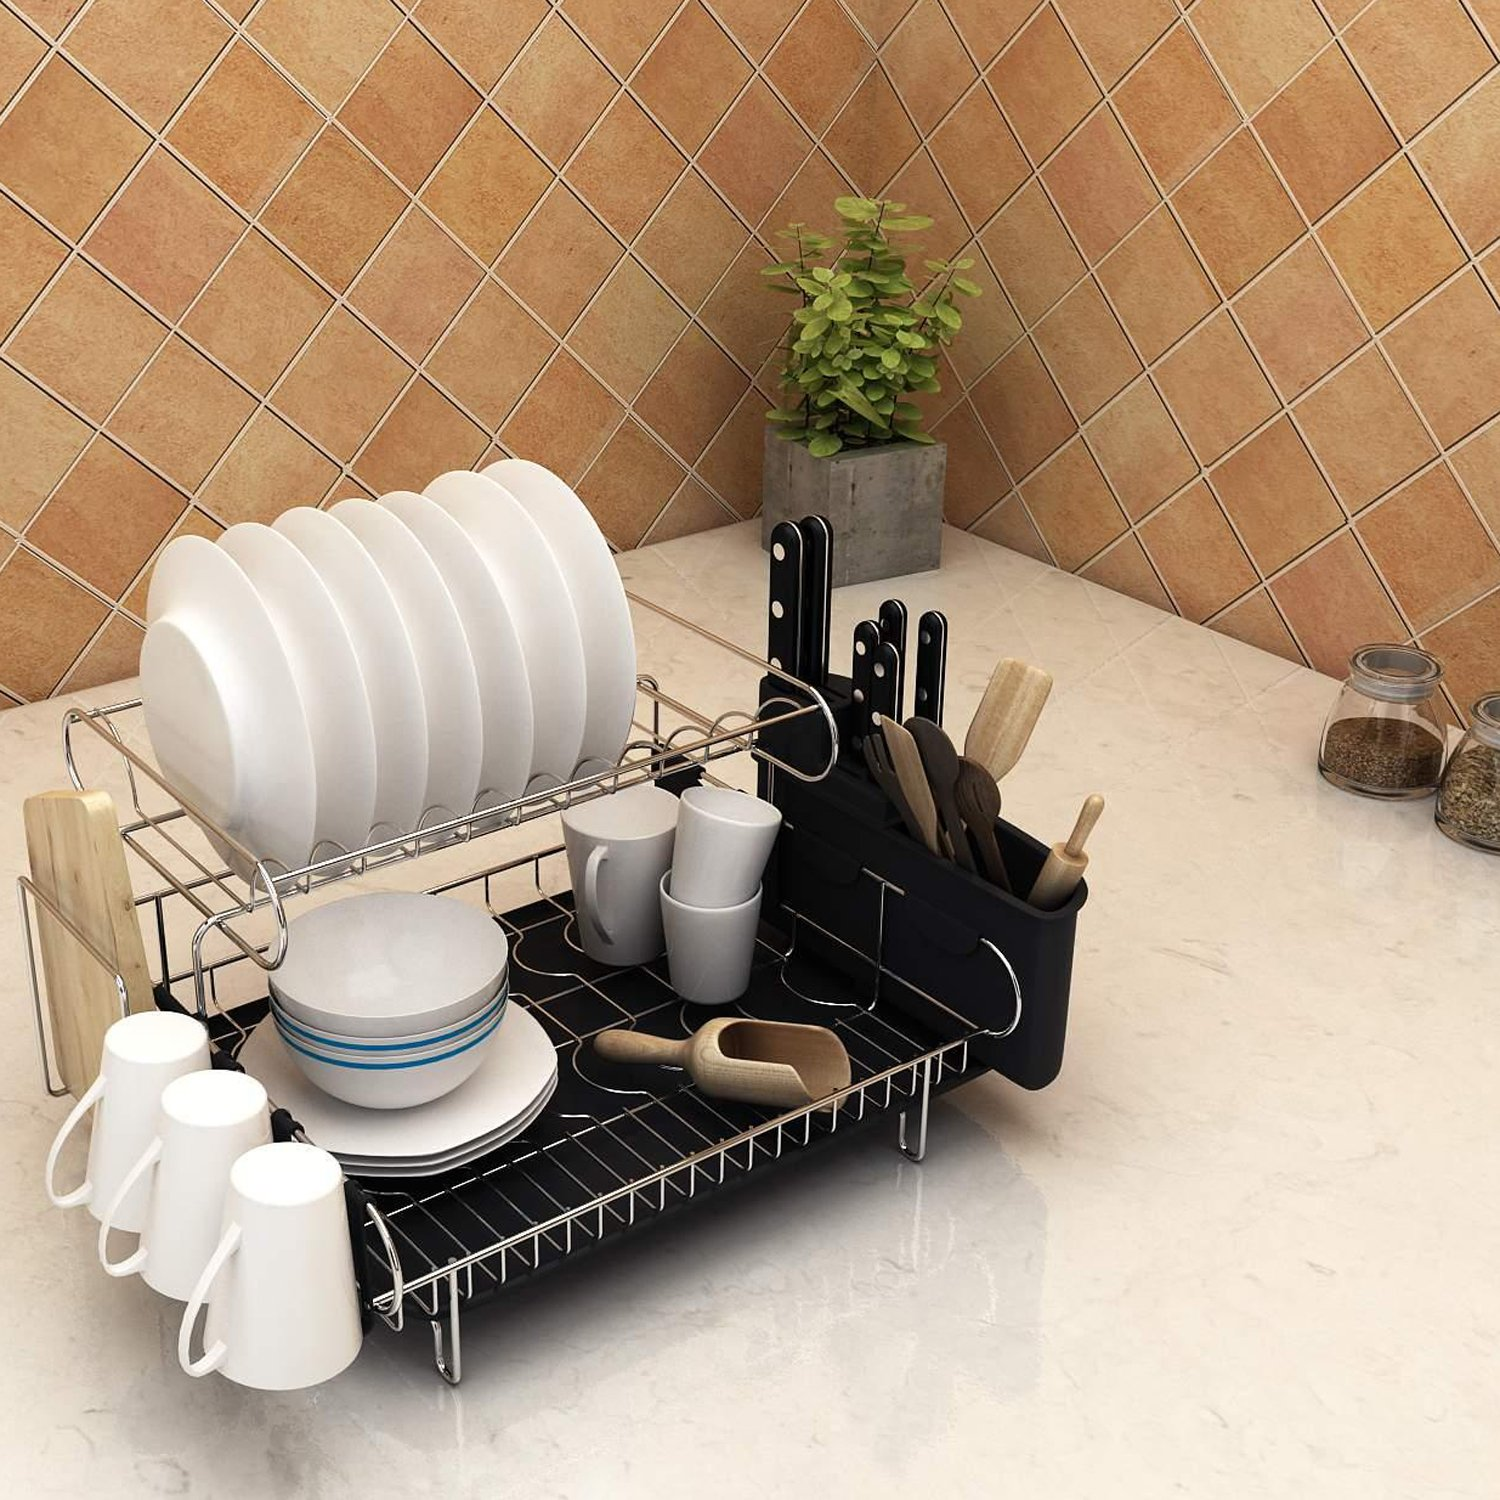 Mewalker 2 Tier Dish Drying Rack 304 Stainless Steel Professional Dish Rack with Microfiber Mat Drain Board and Cutlery Holder, Black by Mewalker (Image #7)